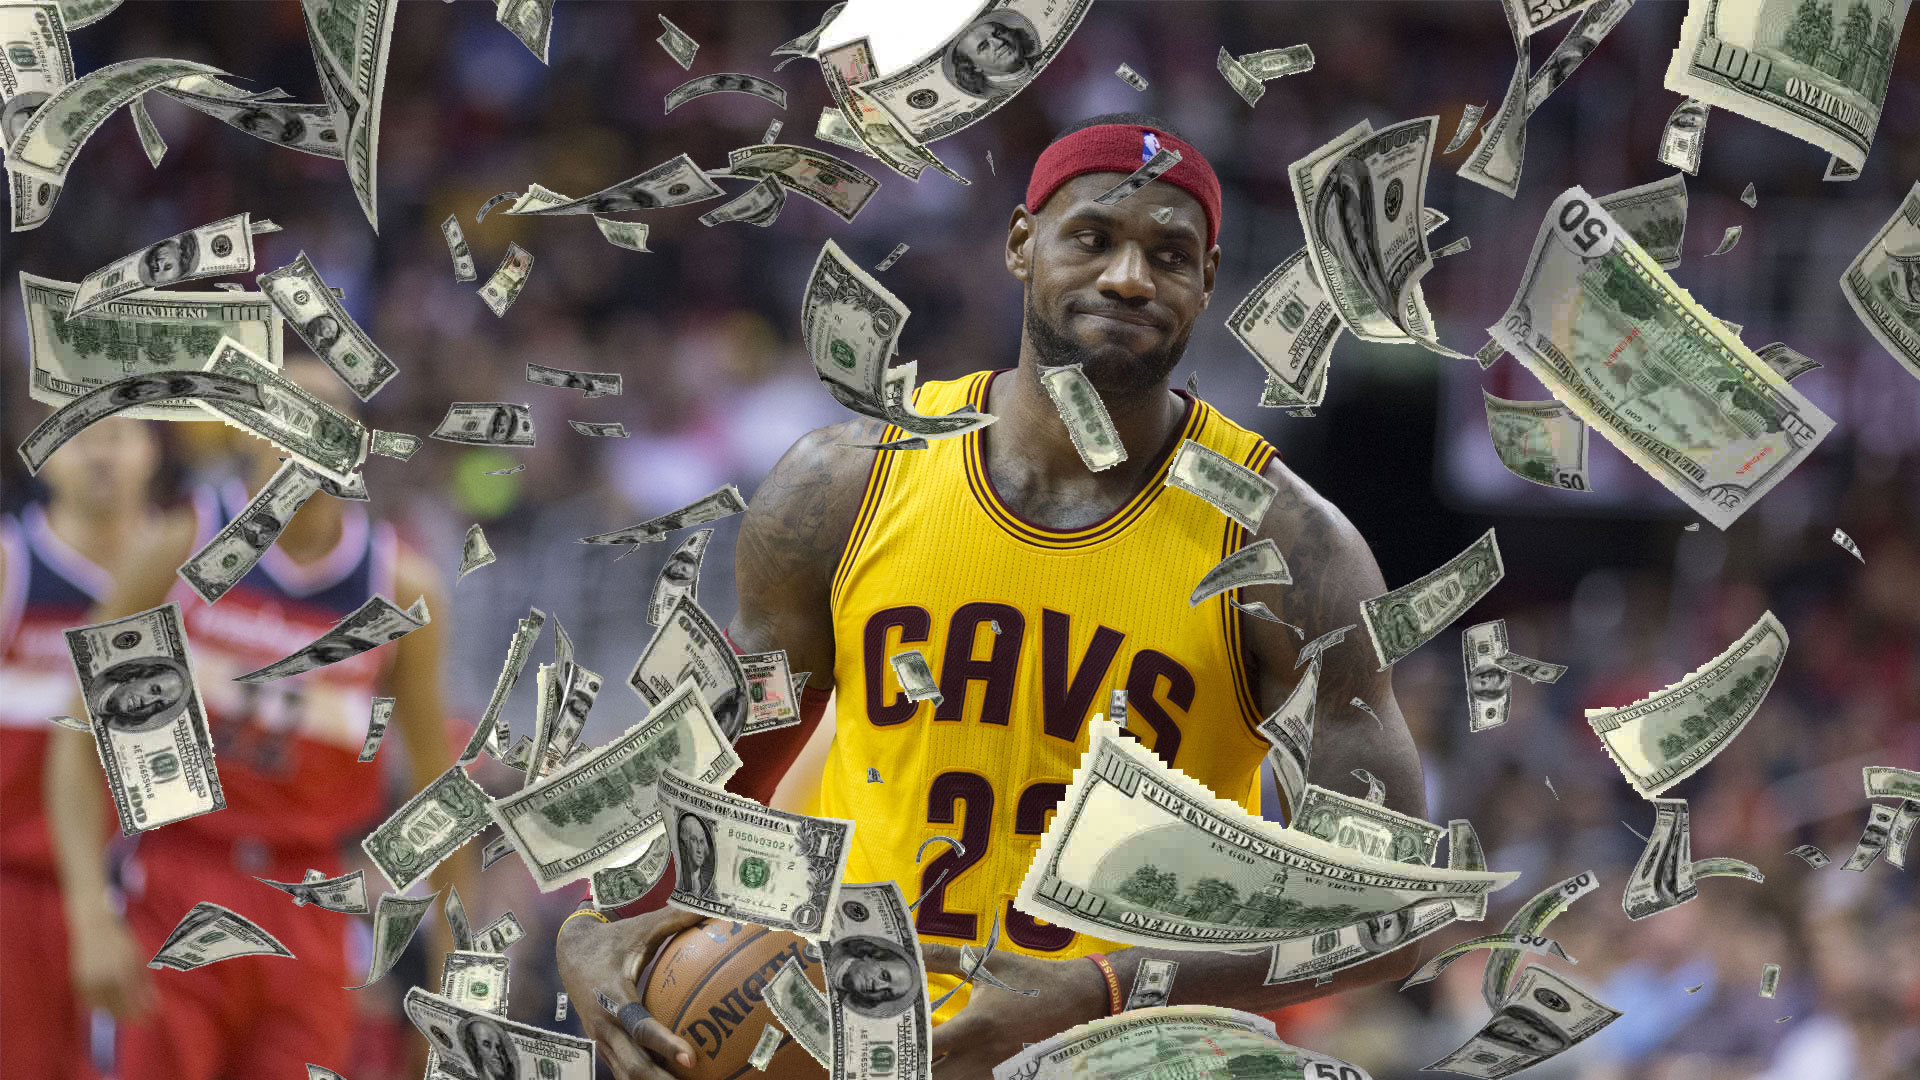 Lebron James Gives 21 Savage and Jewish Money a Shout Out ...